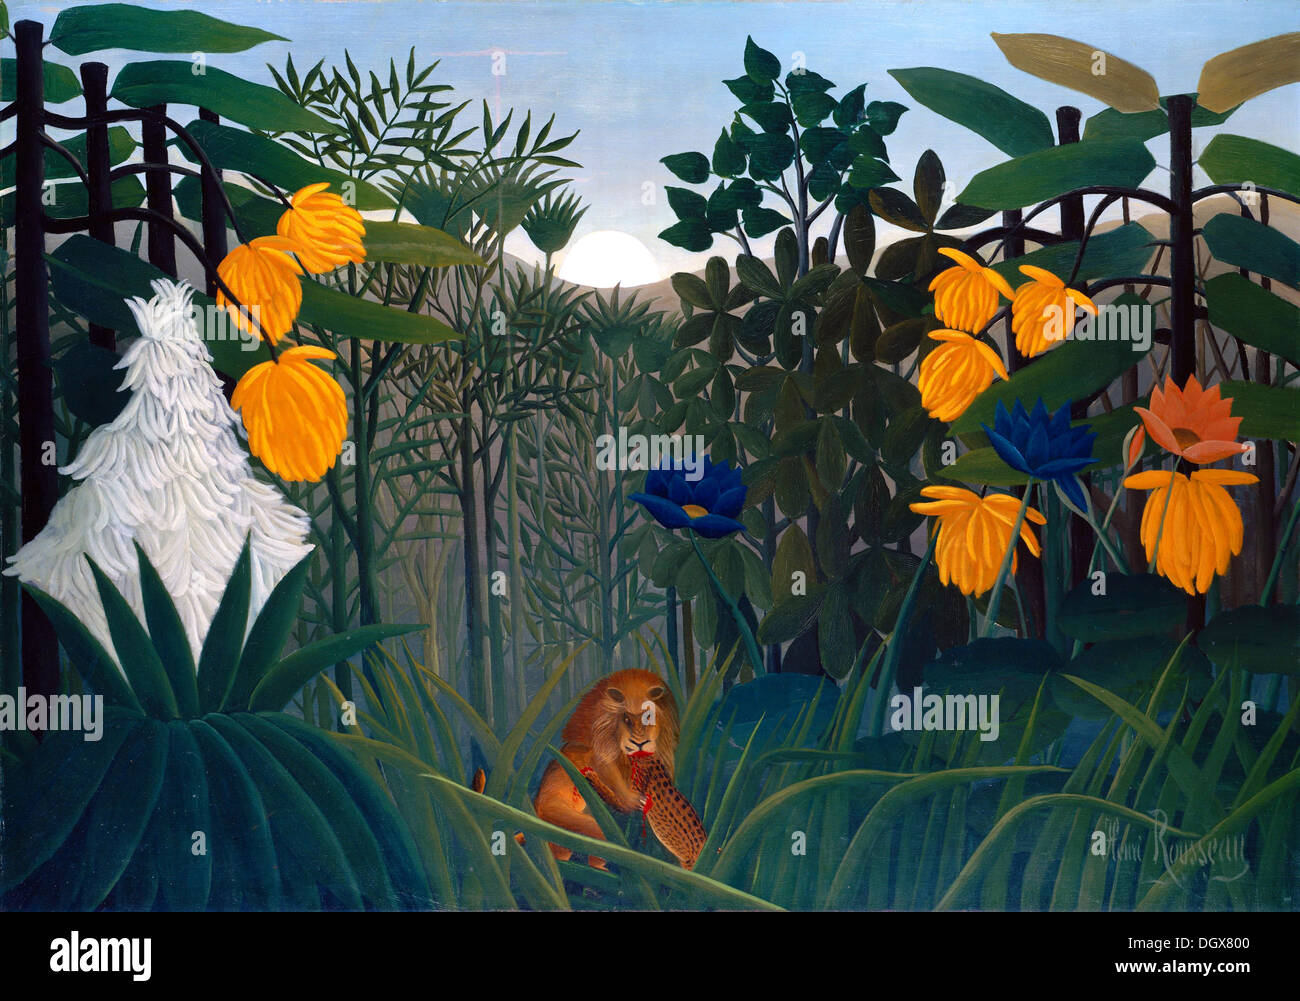 The Repast Of The Lion - by Henri Rousseau, 1907 - Stock Image